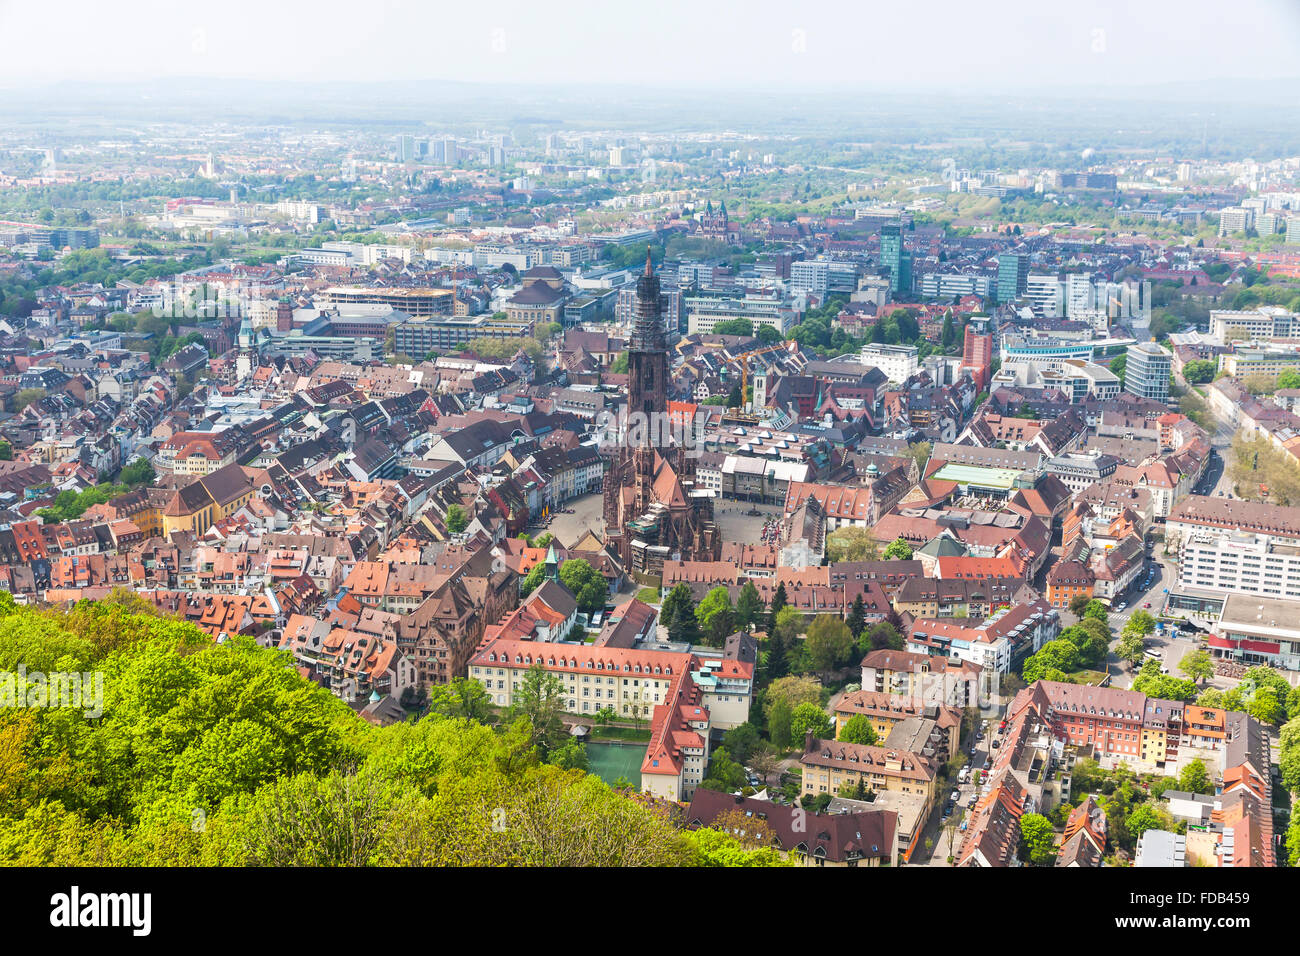 aerial view of freiburg im breisgau city germany freiburg munster stock photo 94287125 alamy. Black Bedroom Furniture Sets. Home Design Ideas